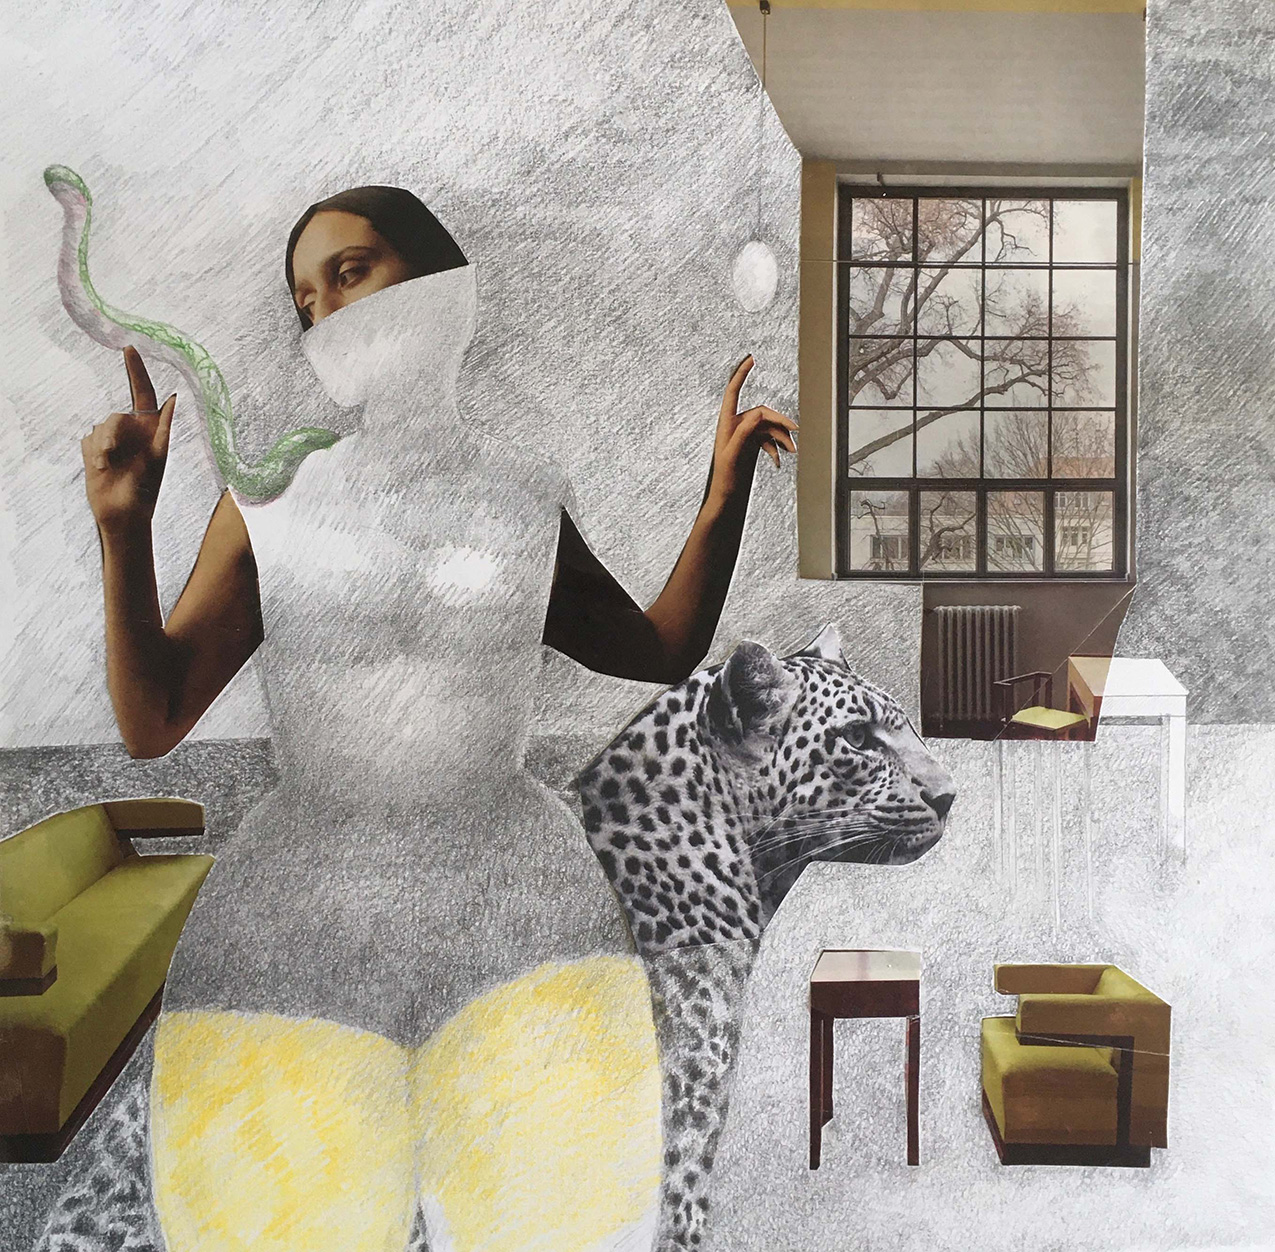 collage featuring found paper imagery and pencil sketches. features a woman with a snake on her shoulder, a leopard, a window with a barren landscape, and interior furniture.